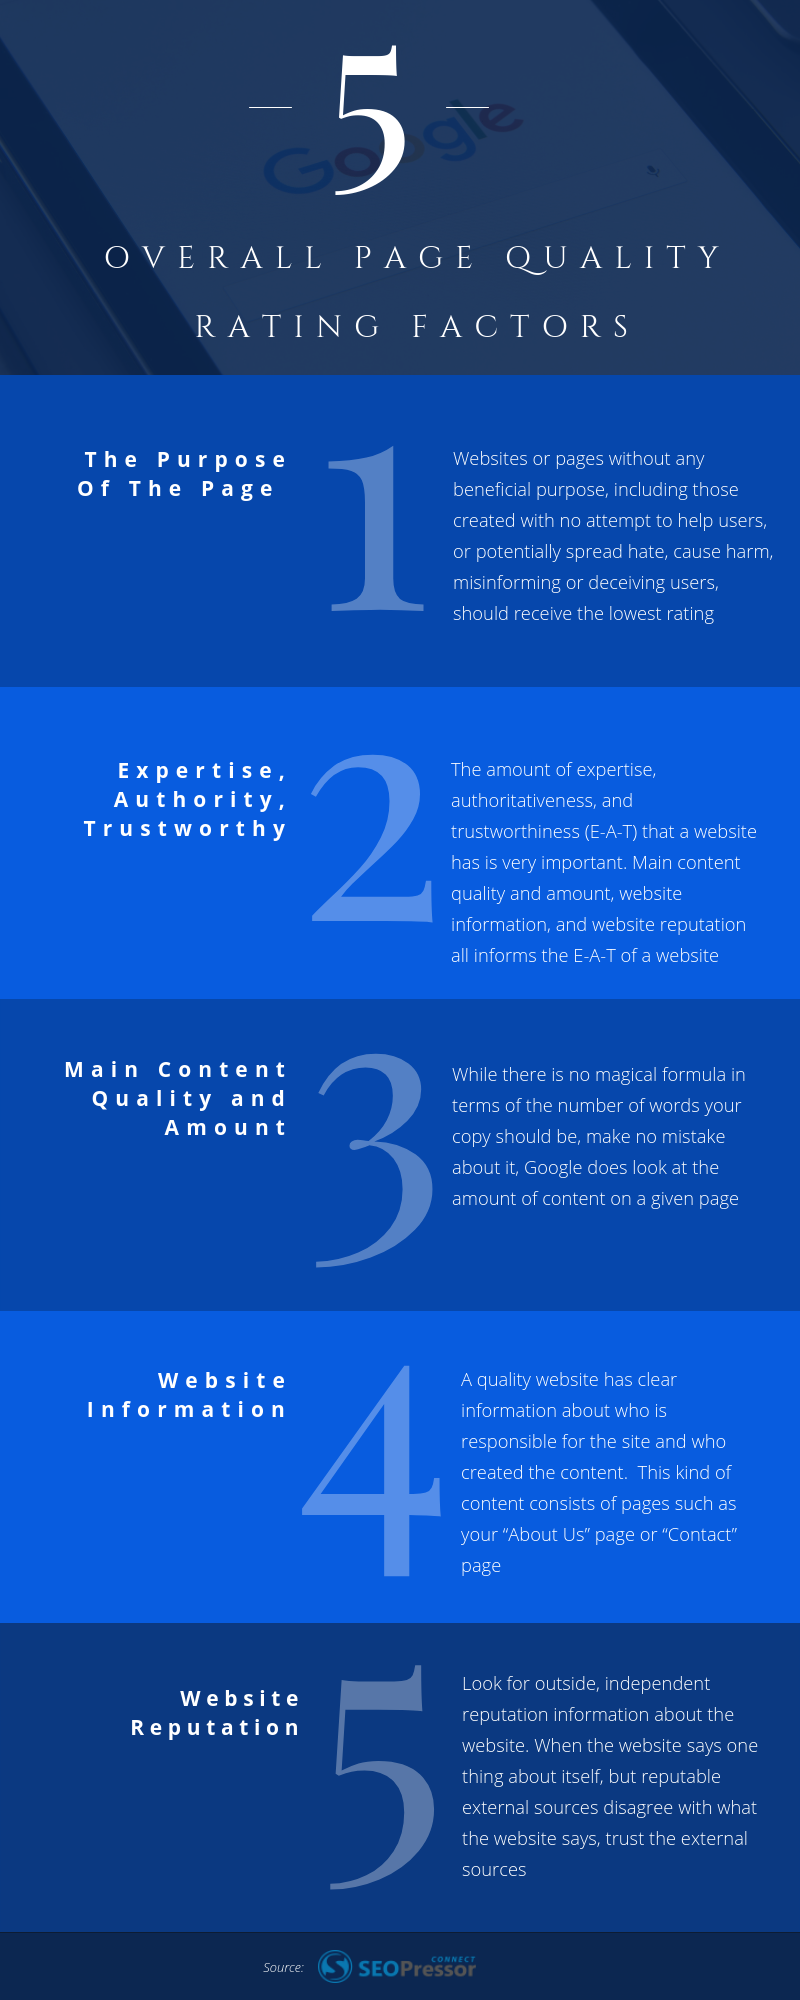 Overall Page Quality Rating Factors Google